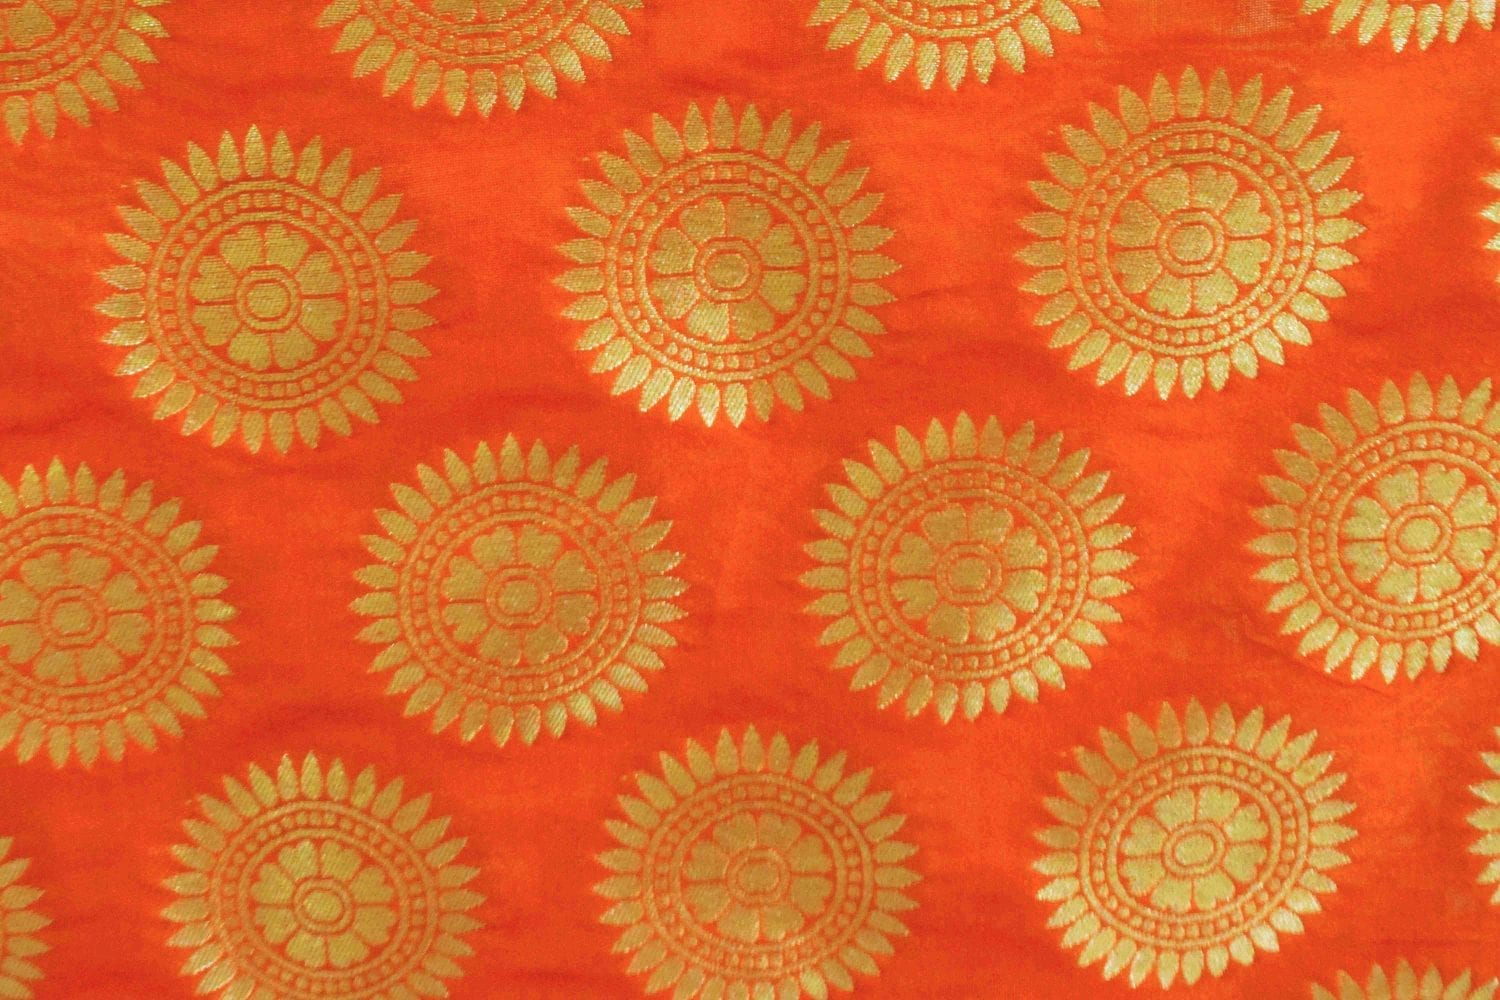 Orange Banarasi Silk Party Wear Dupatta D0951 2